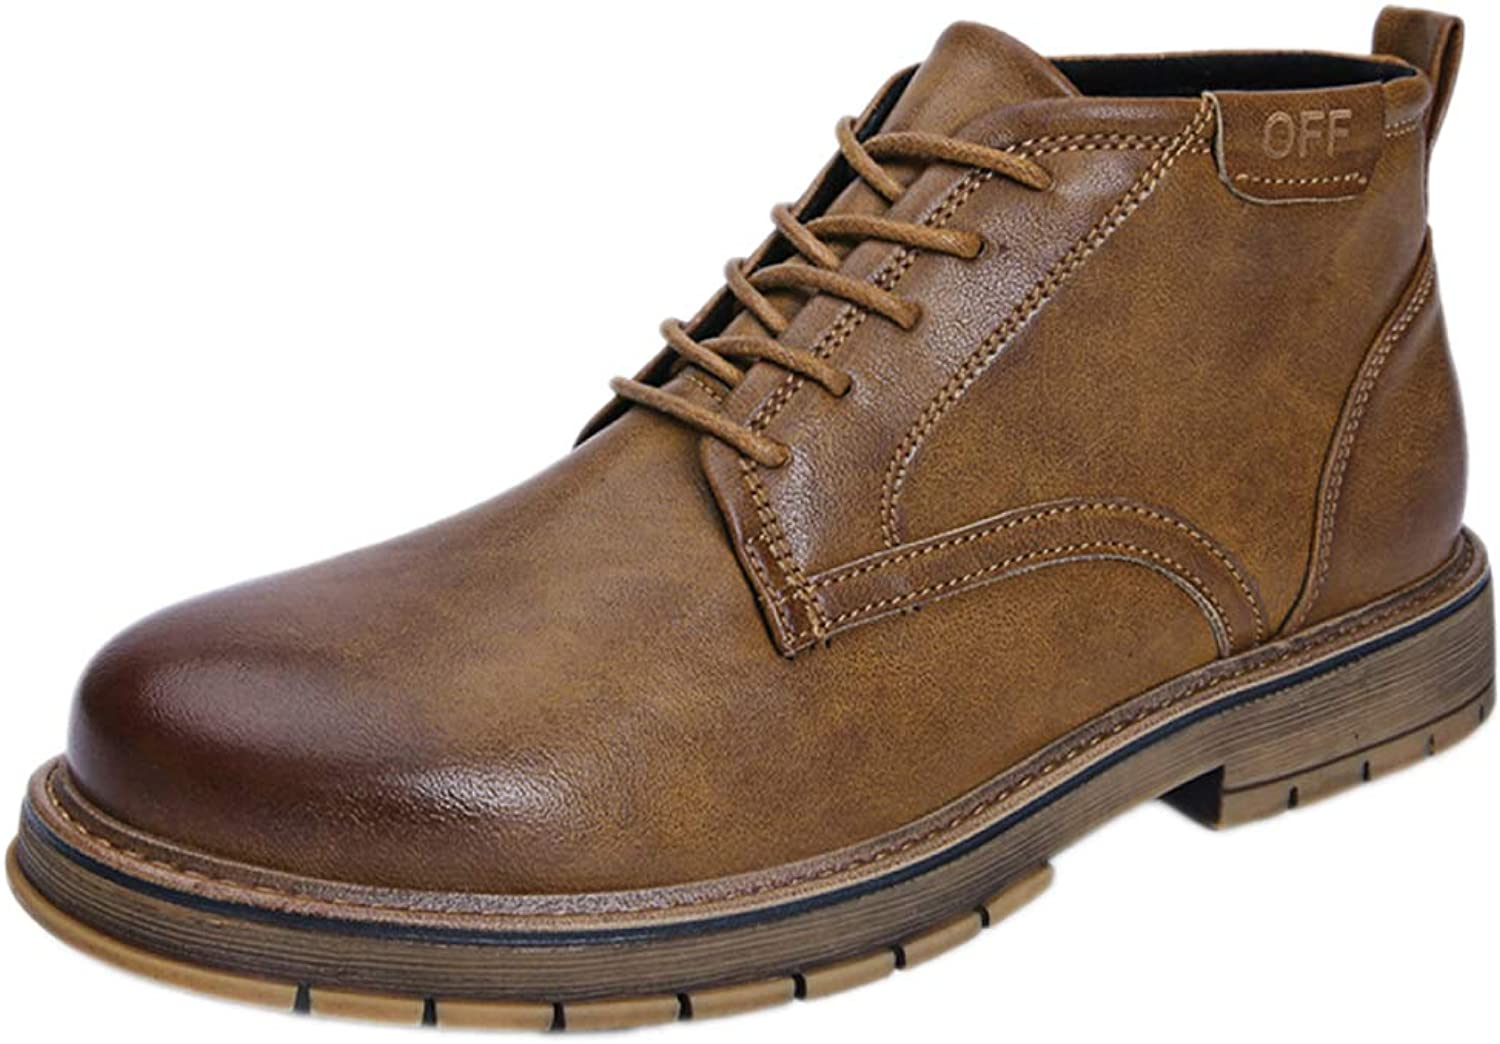 Snfgoij Work shoes Men Sneakers Waterproof Resistant Casual Autumn and Winter High shoes Retro Martin Boots Fashion Short Boots,Brown-43